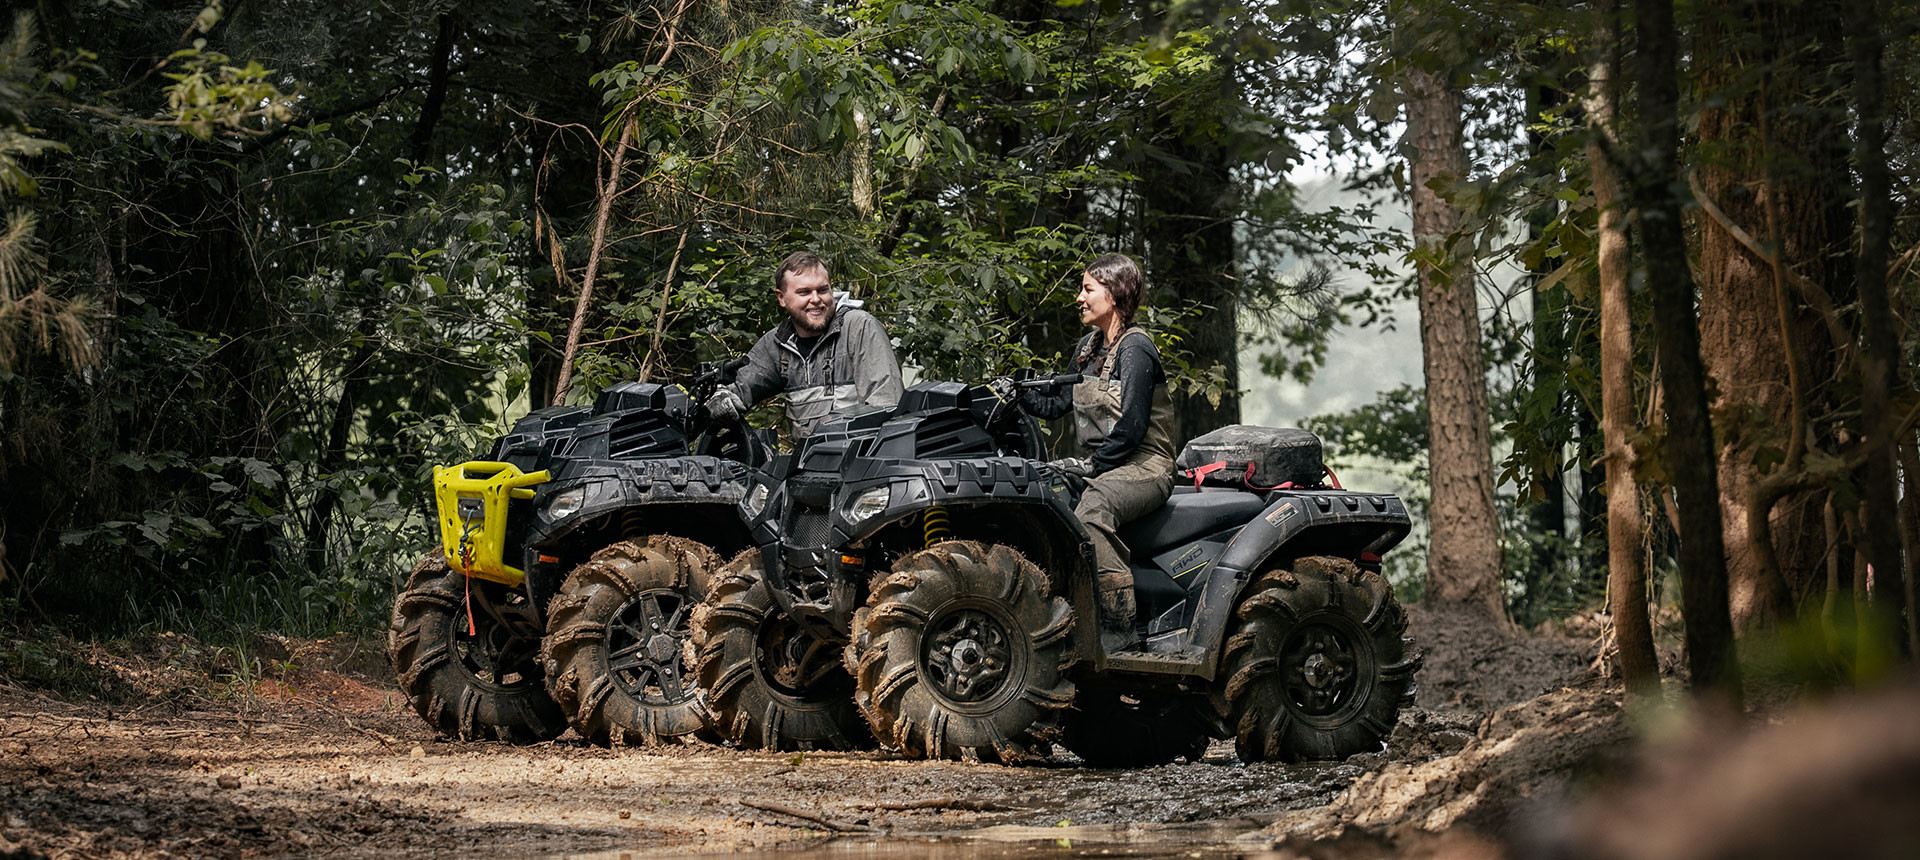 2020 Sportsman® 850 High Lifter Edition Instagram image 8